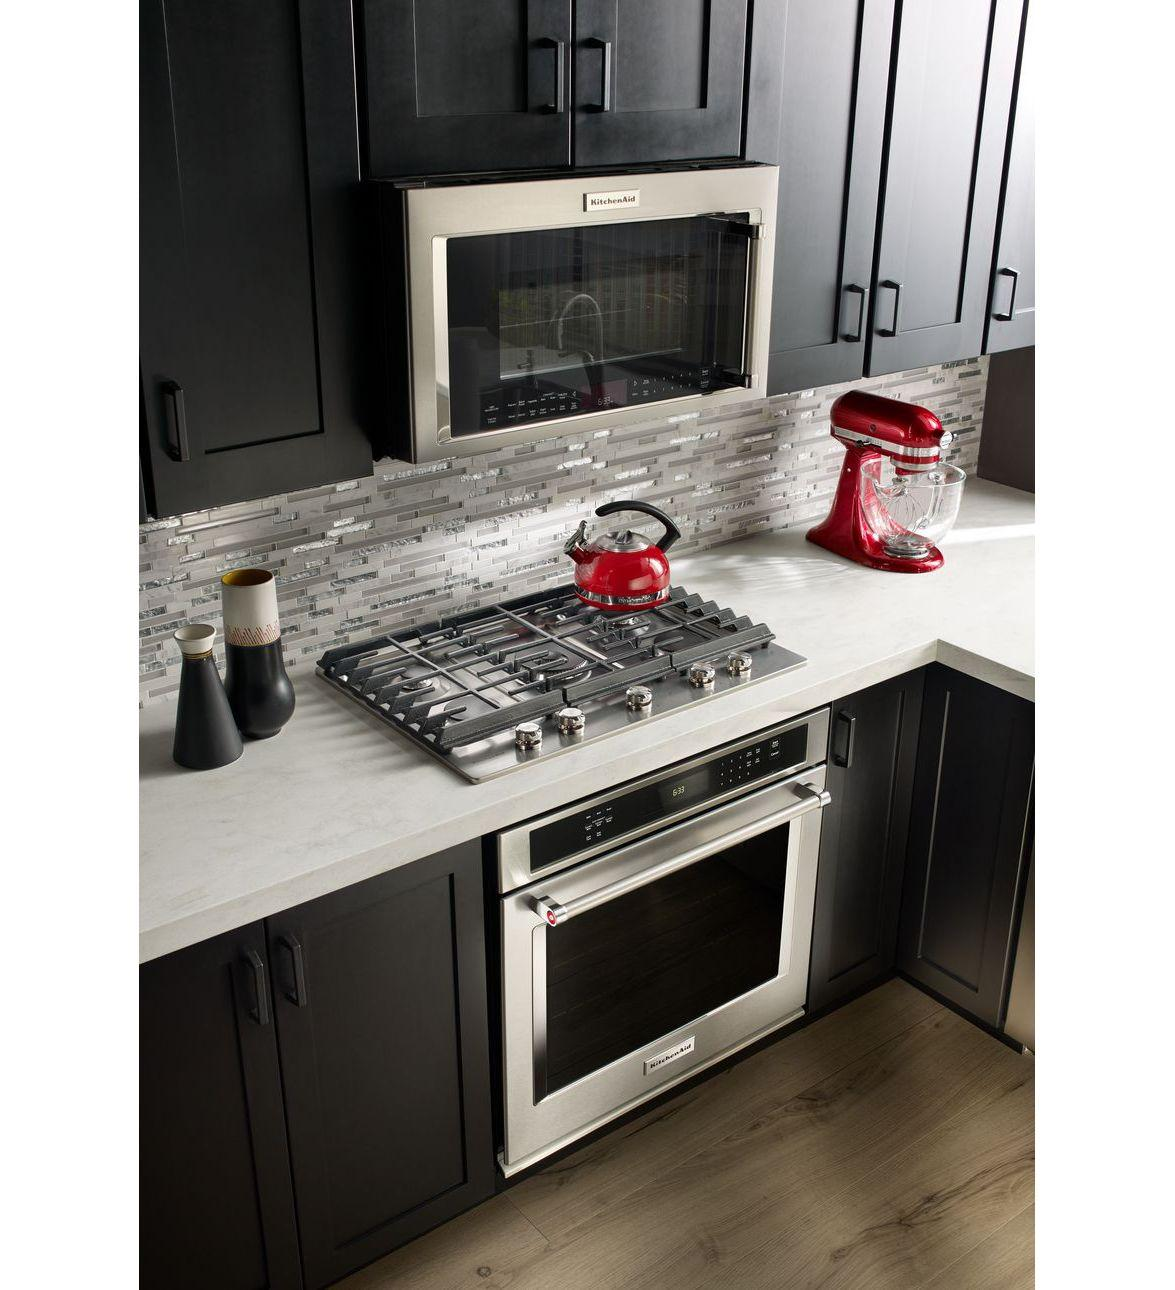 Kitchenaid 30 Inch Single Electric Wall Oven With 5 0 Cu